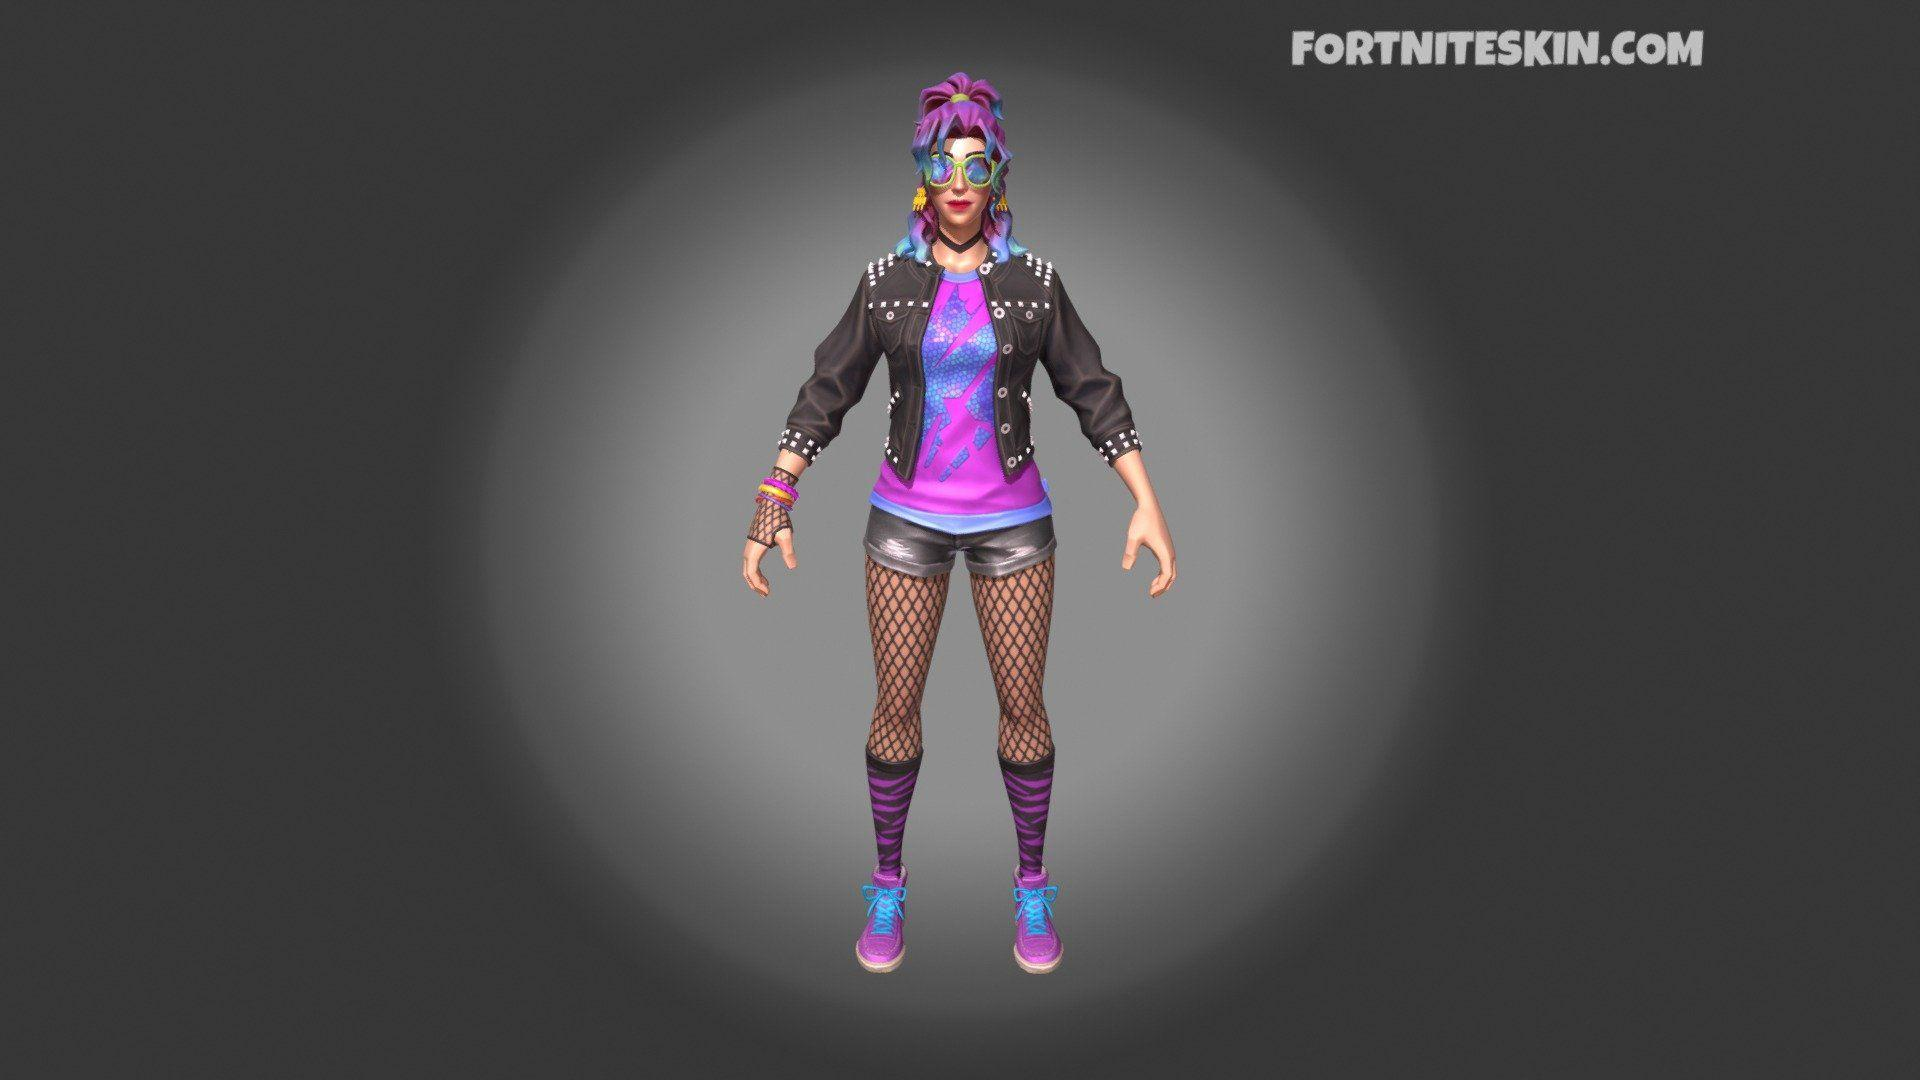 3D models tagged fortnite-synth-star-outfit - Sketchfab